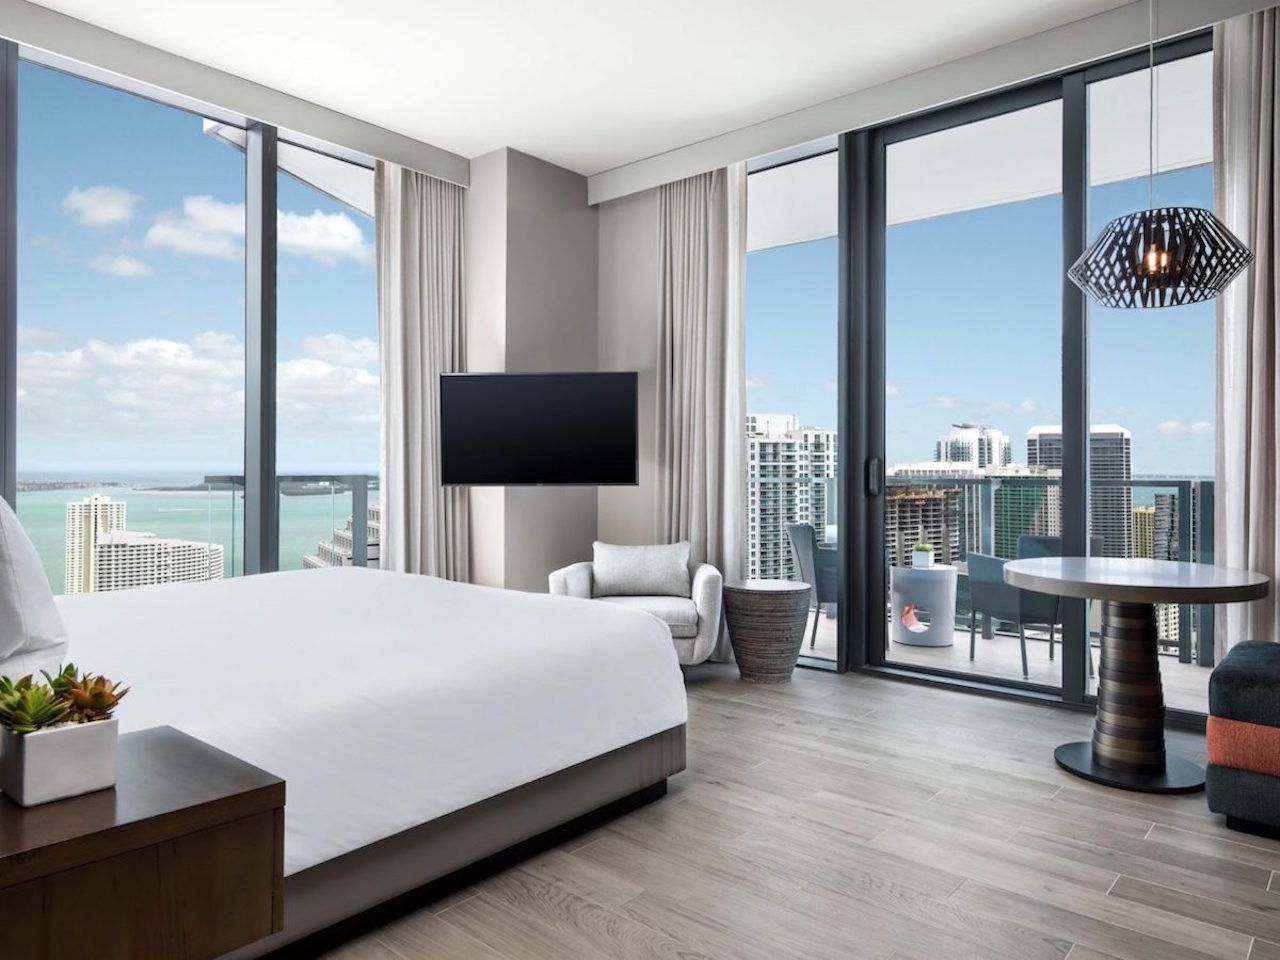 EAST Miami hotel room overlooking dowtown and the water